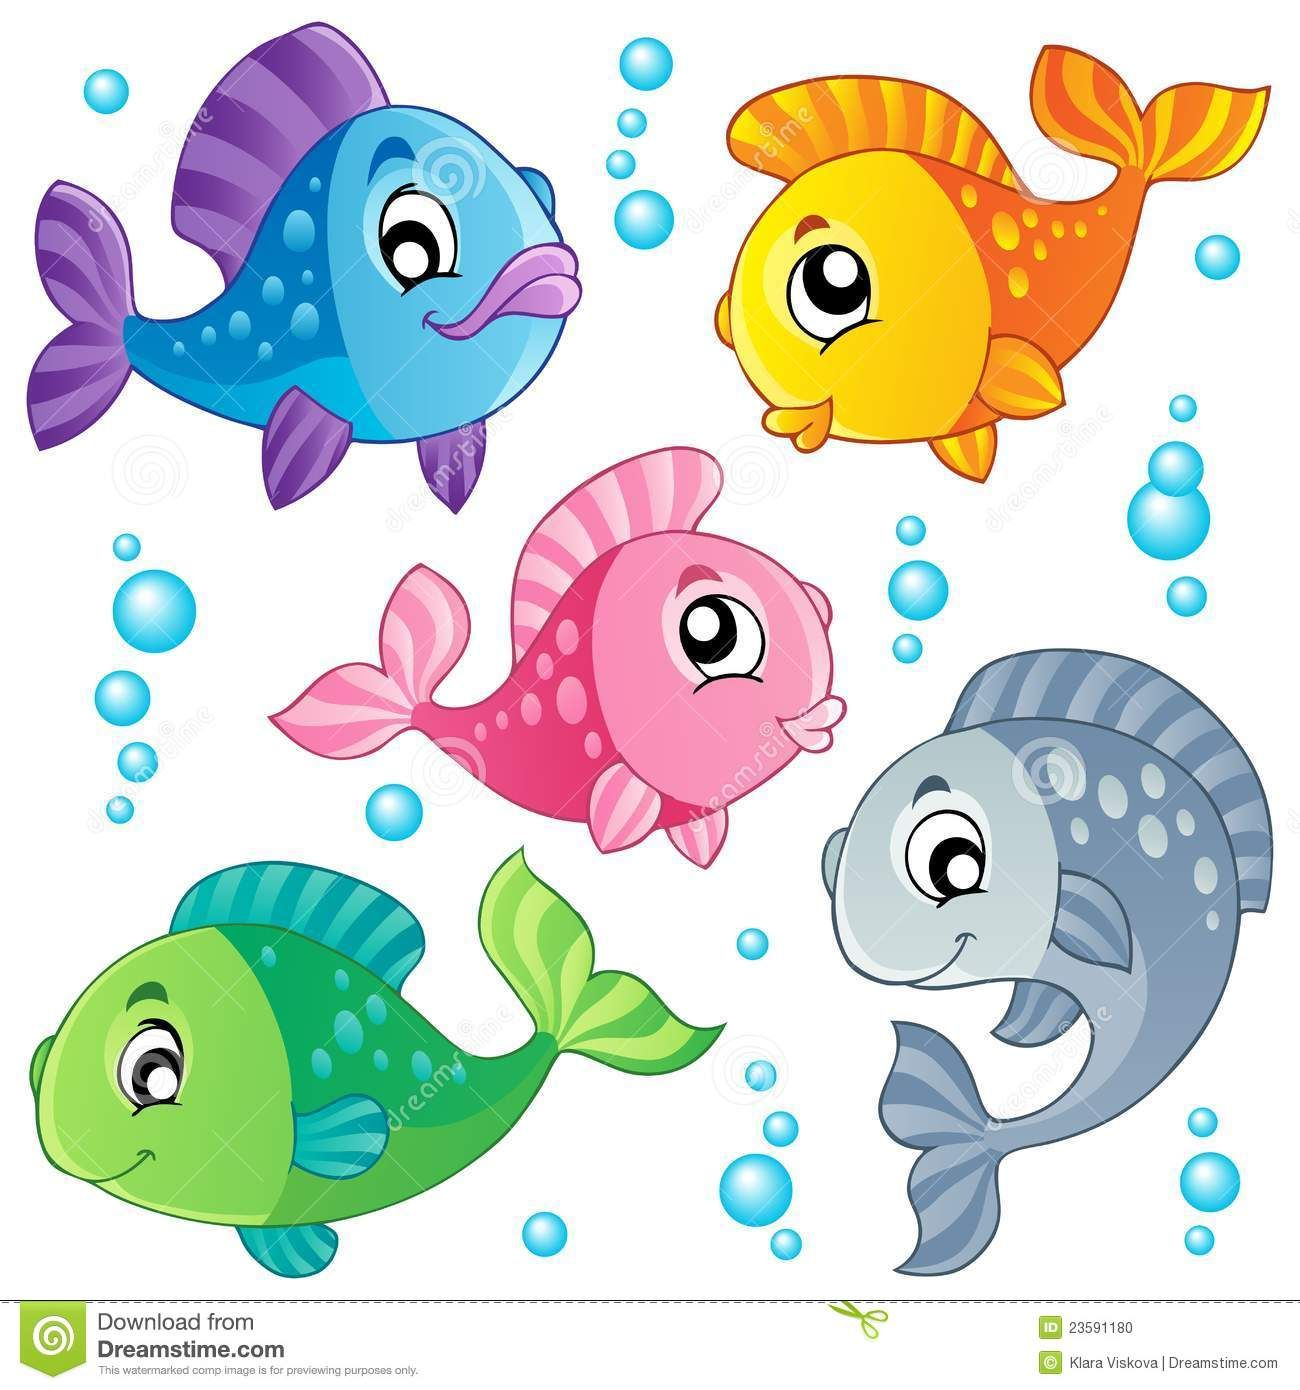 image library download Clip art various fishes. Cute fish clipart